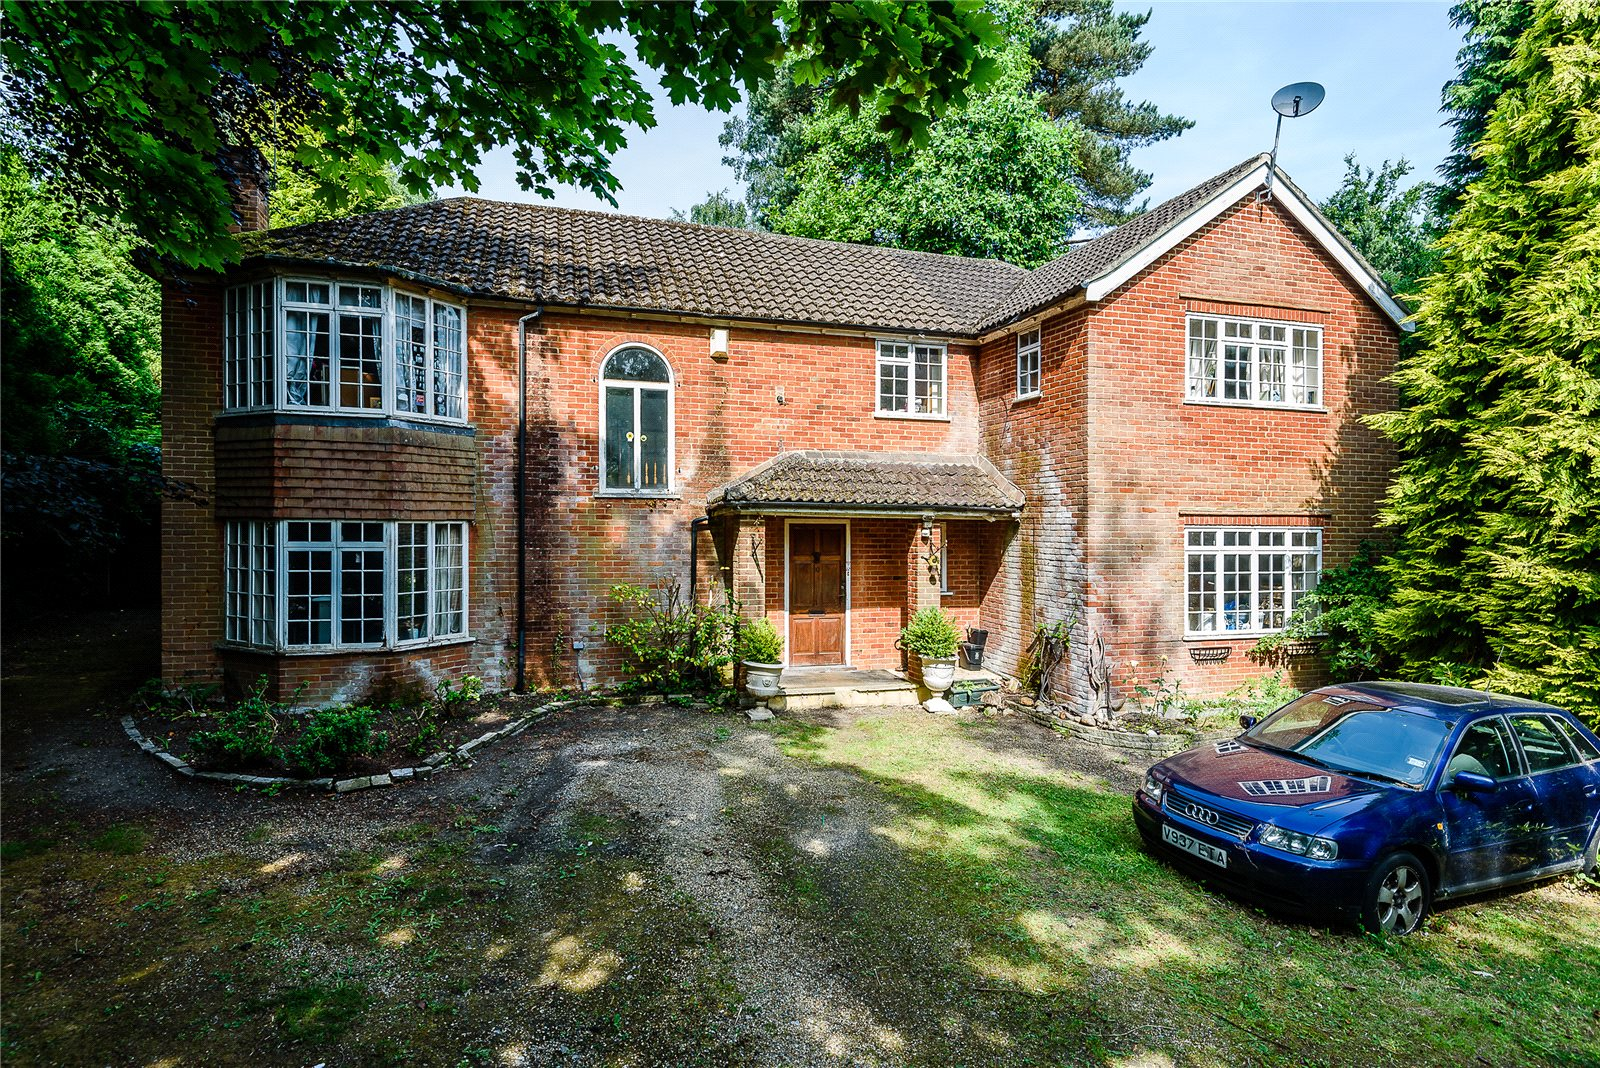 独户住宅 为 销售 在 Llanvair Close, Ascot, Berkshire, SL5 Ascot, 英格兰